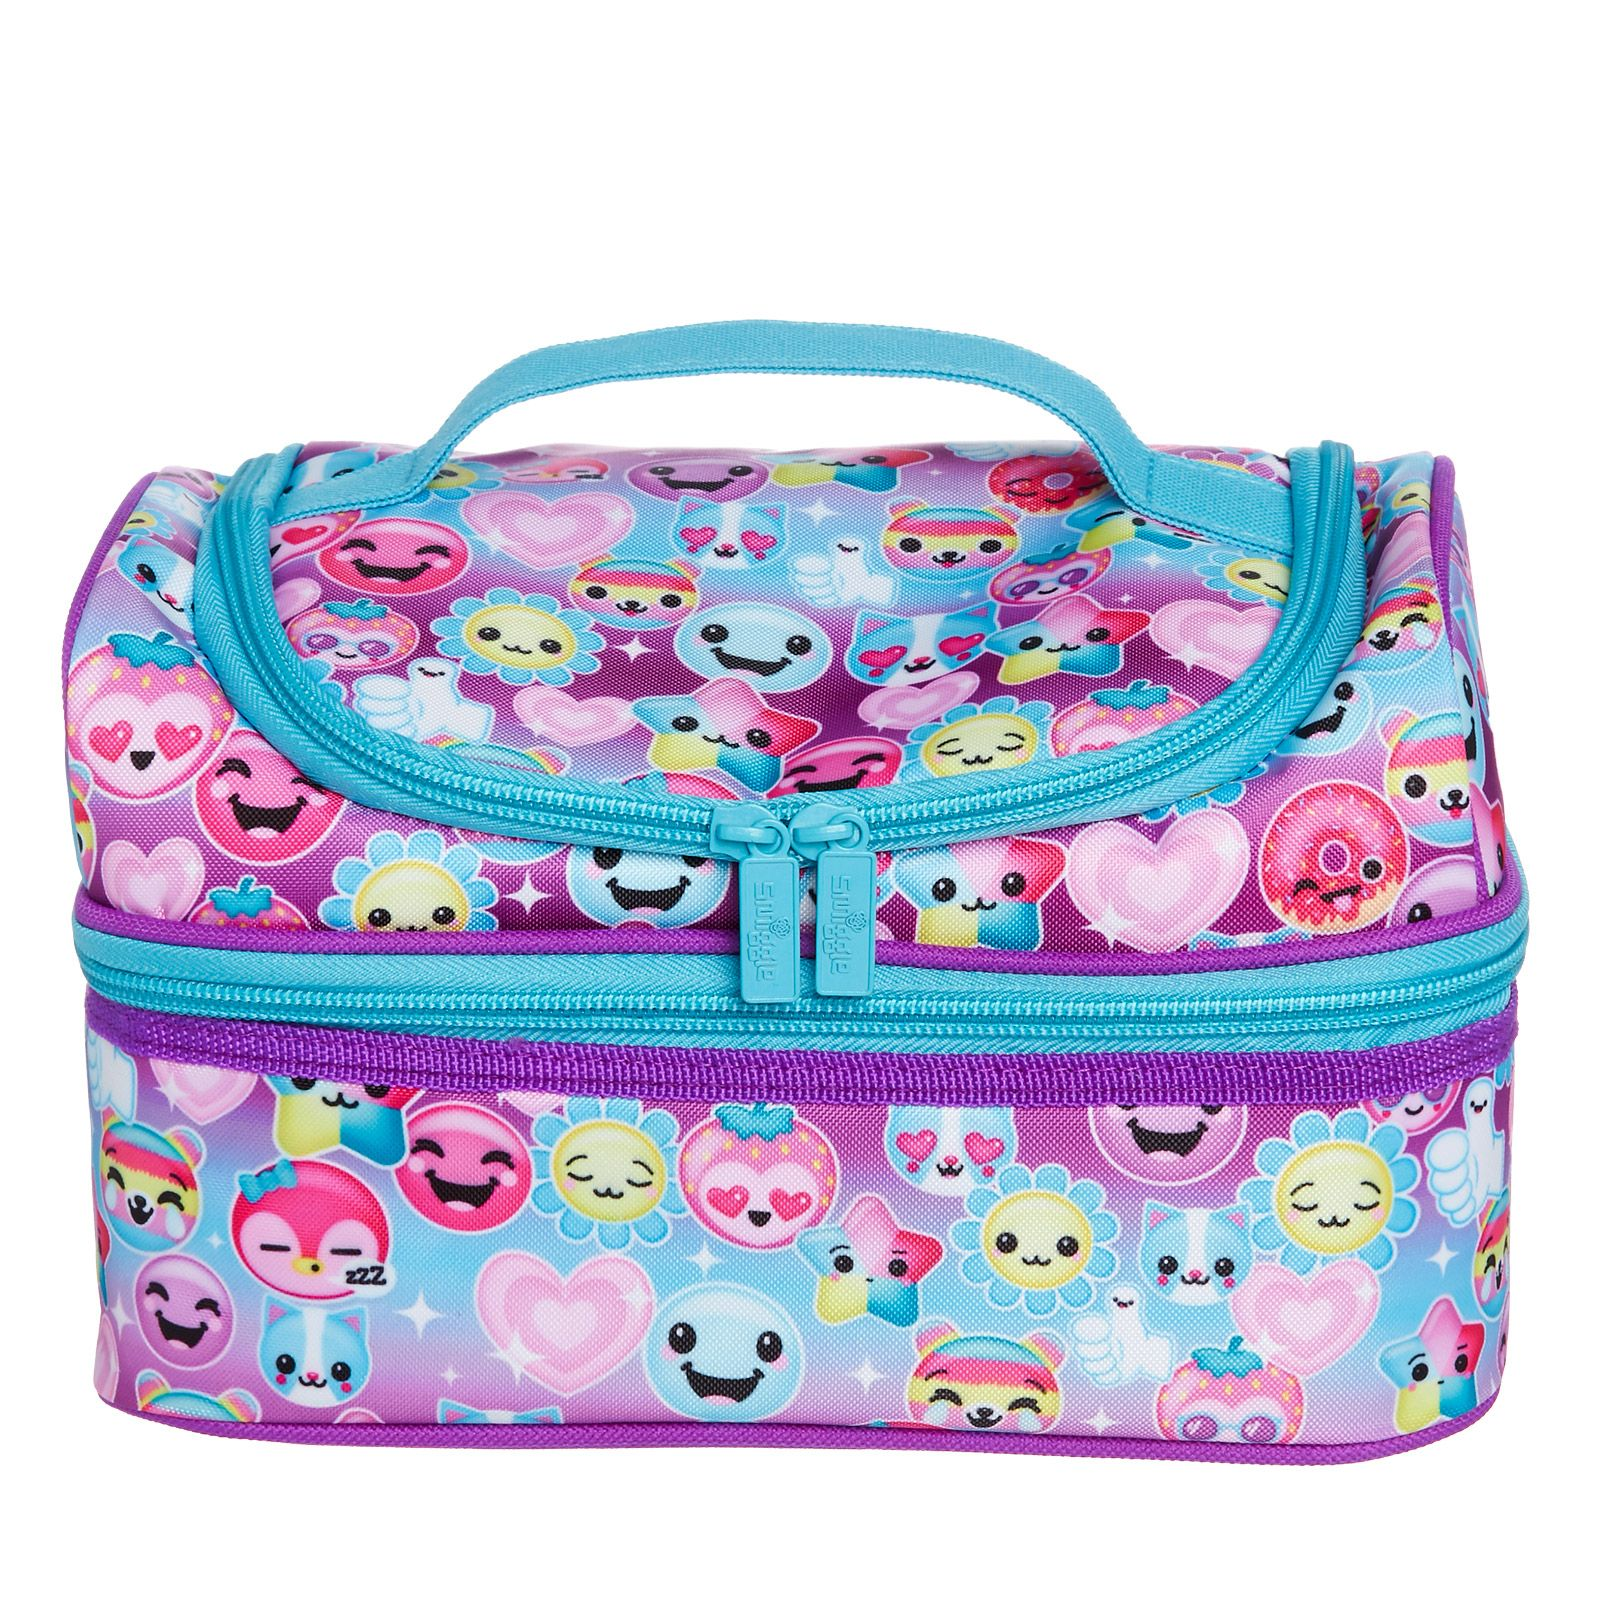 Image for Smiggle Says Lunch Box Double Decker from Smiggle  ea0fe5b6dd97f